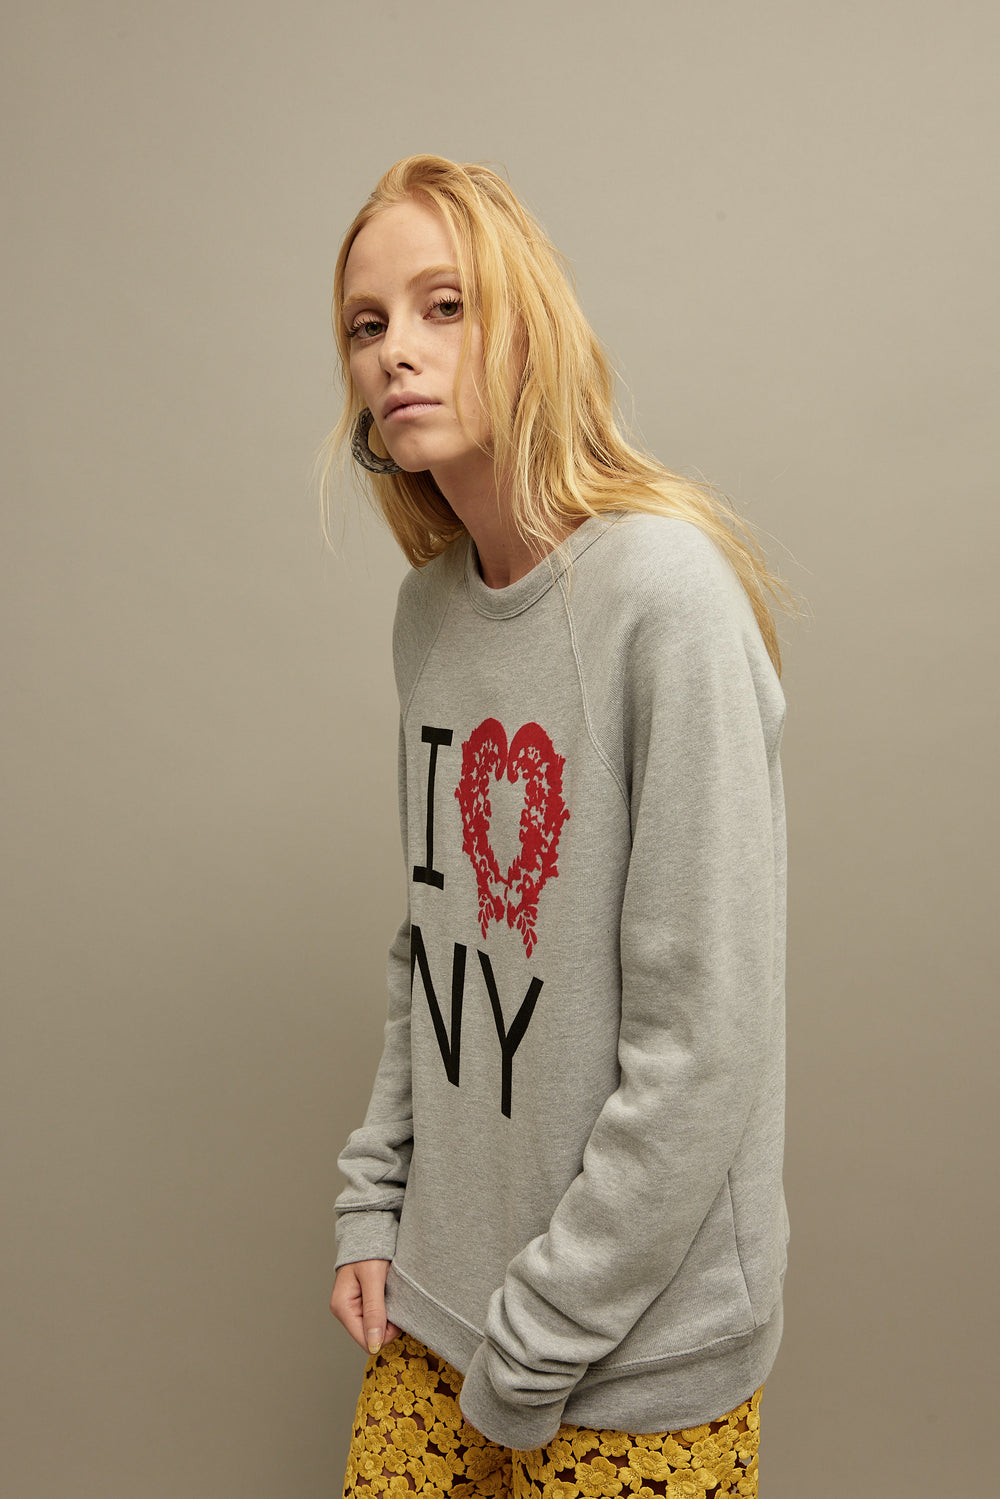 Flock I Love NY Sweatshirt